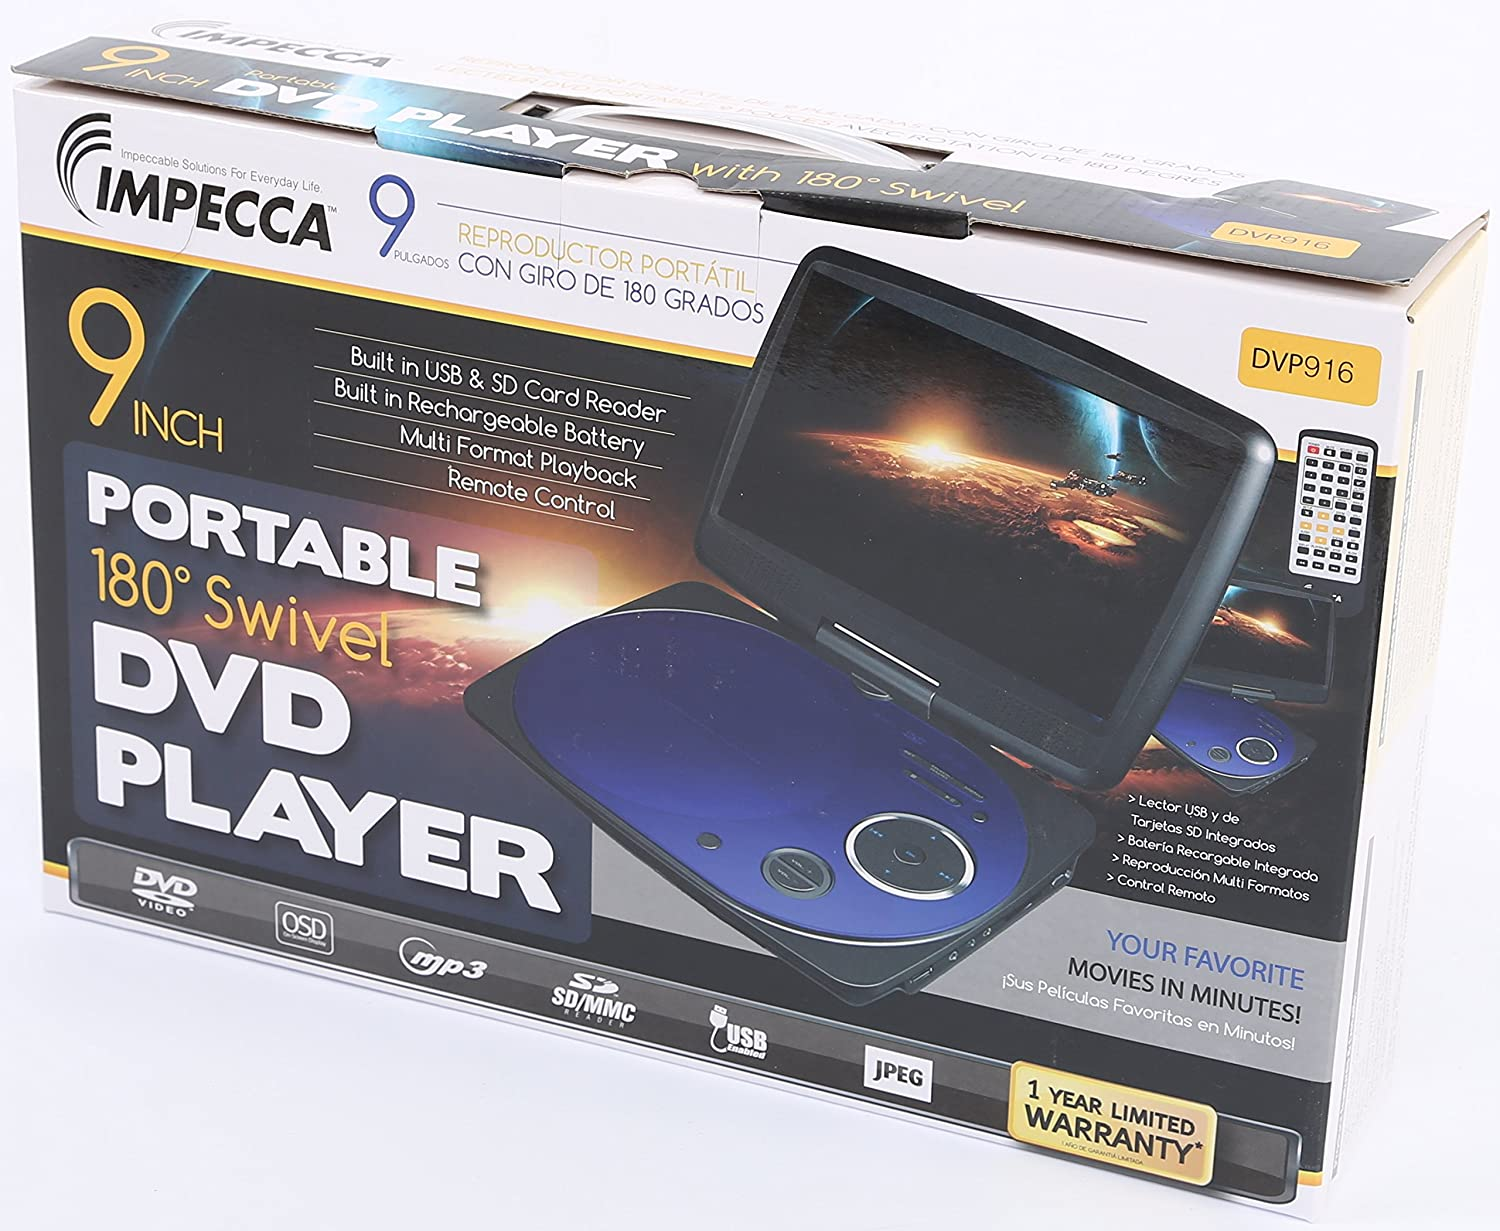 Impecca DVP916B 9 Inch Swivel Screen, Portable DVD Player with Rechargeable Battery, SD Card Slot and USB Port, Blue